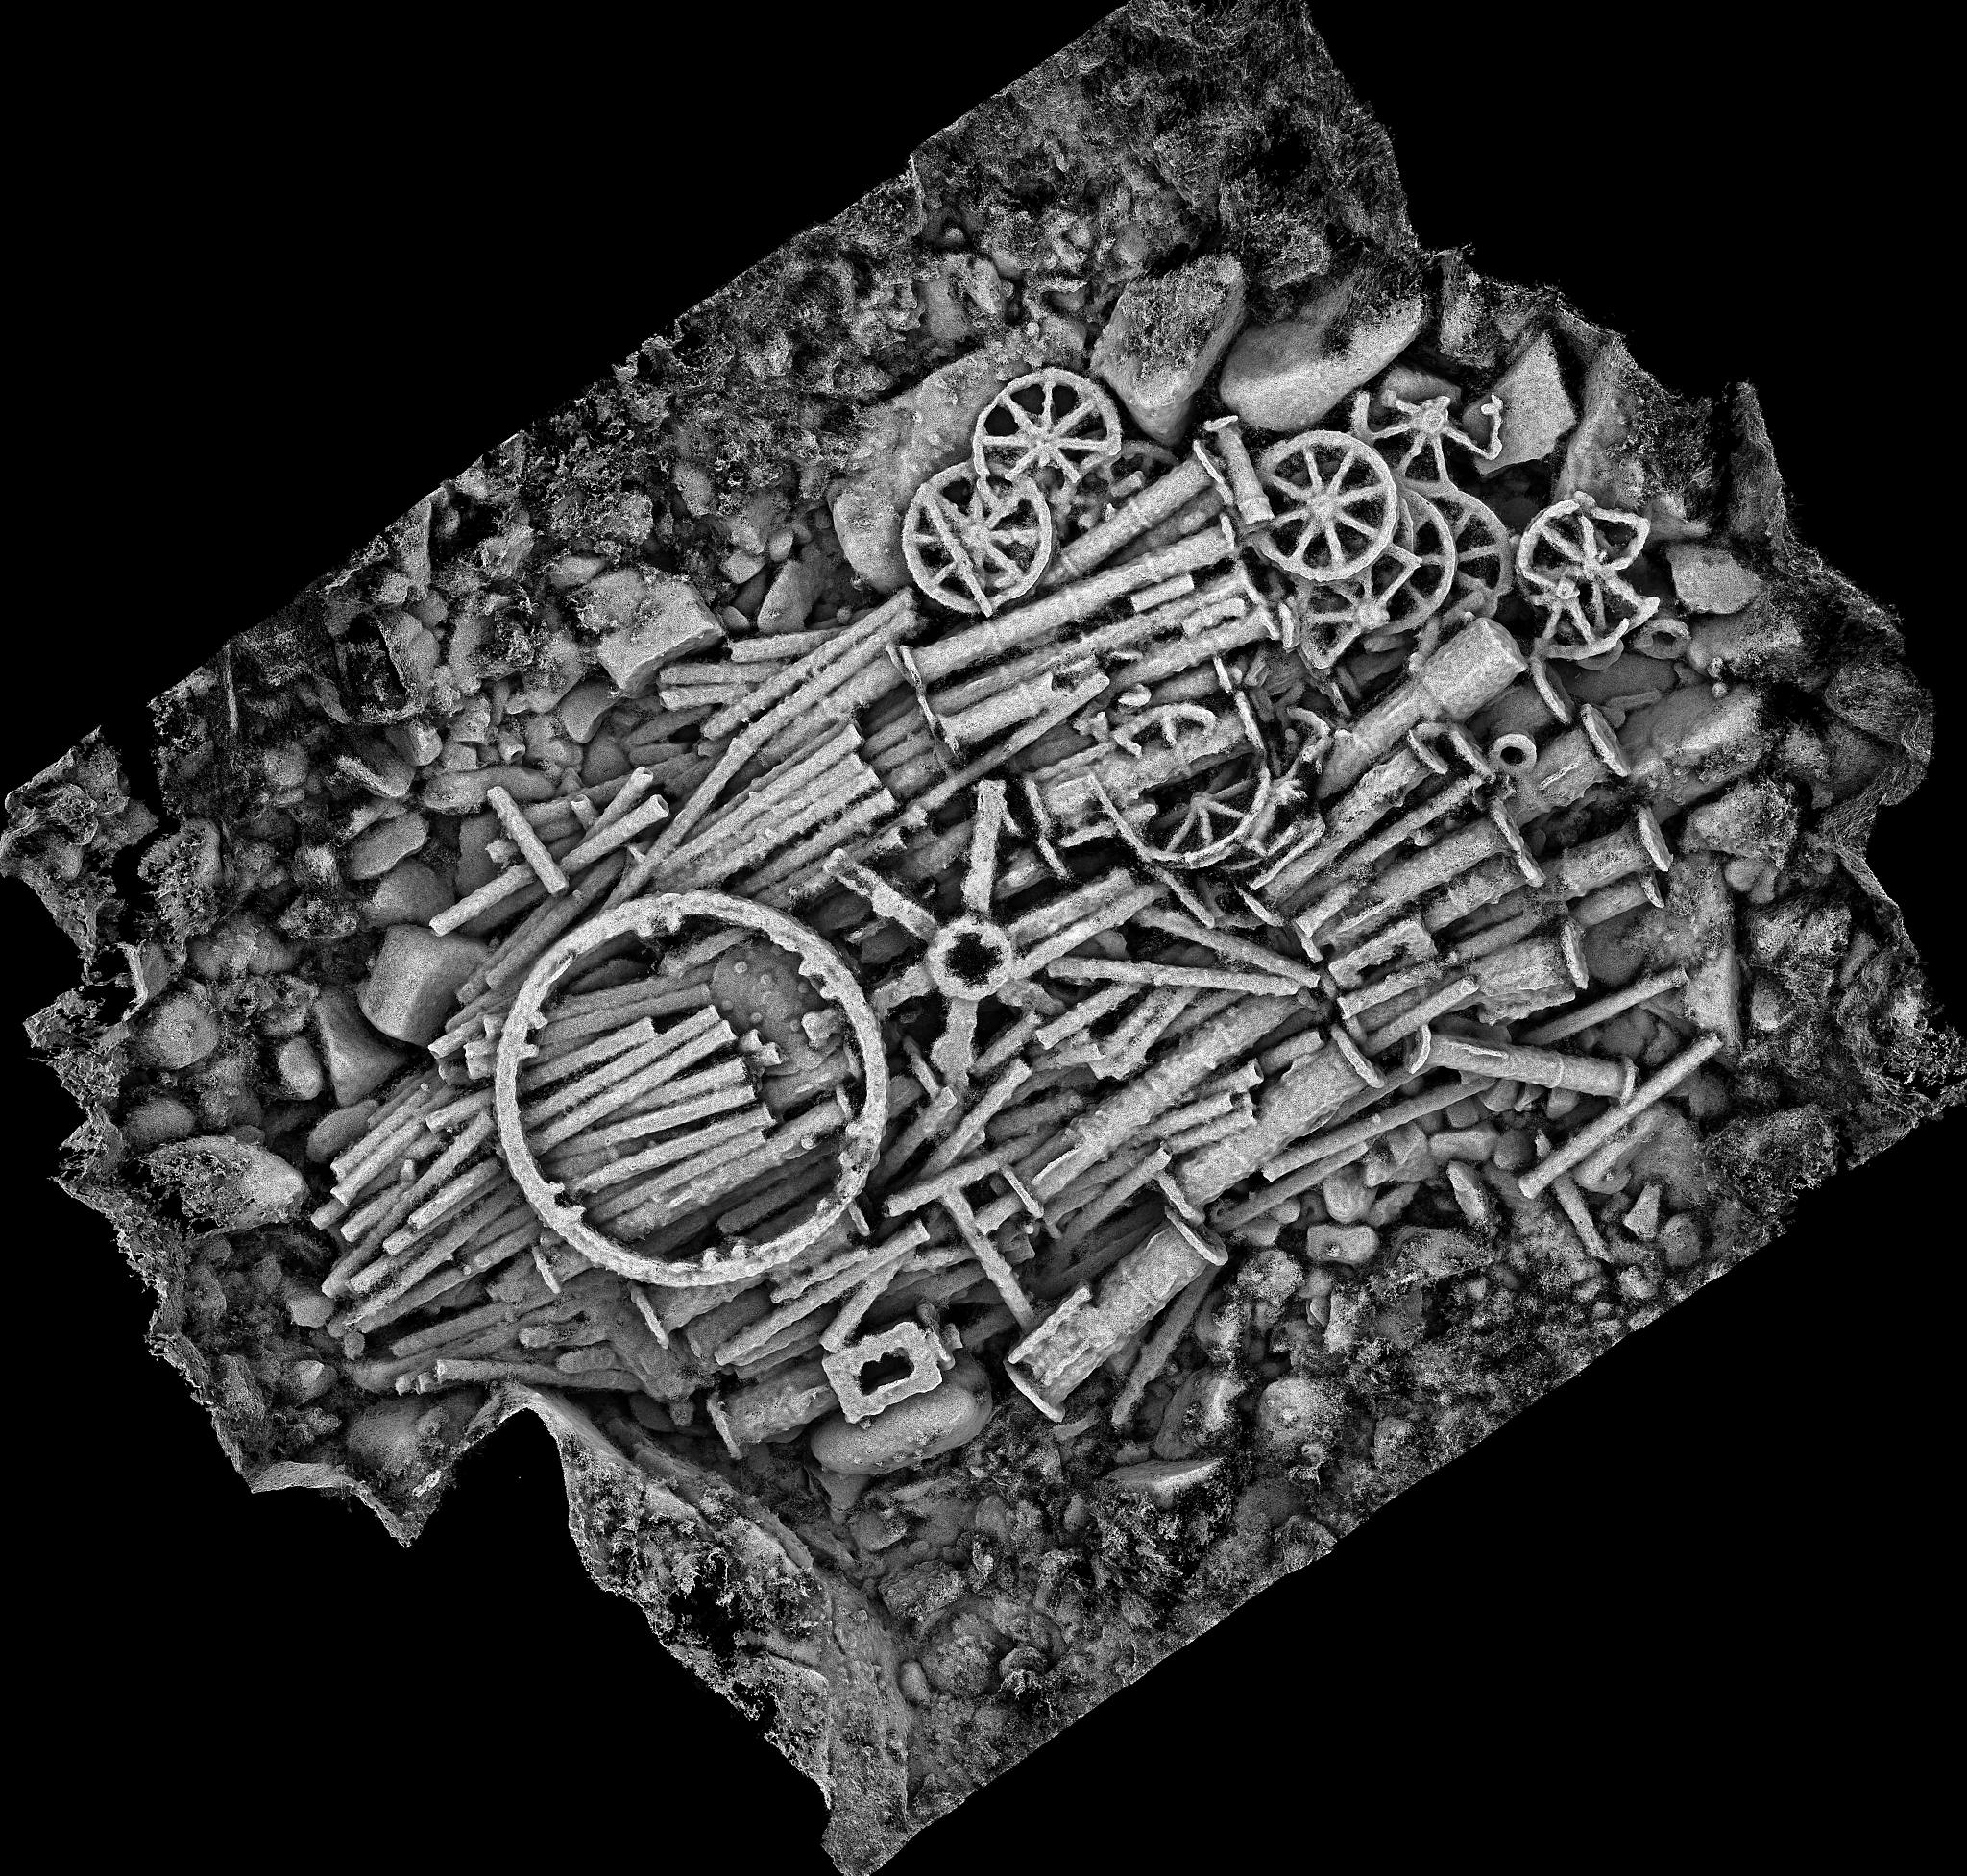 Greyscale representation of the cargo mound. This image was created from the 3D model, and uses shadows to enhance the shape of each component.